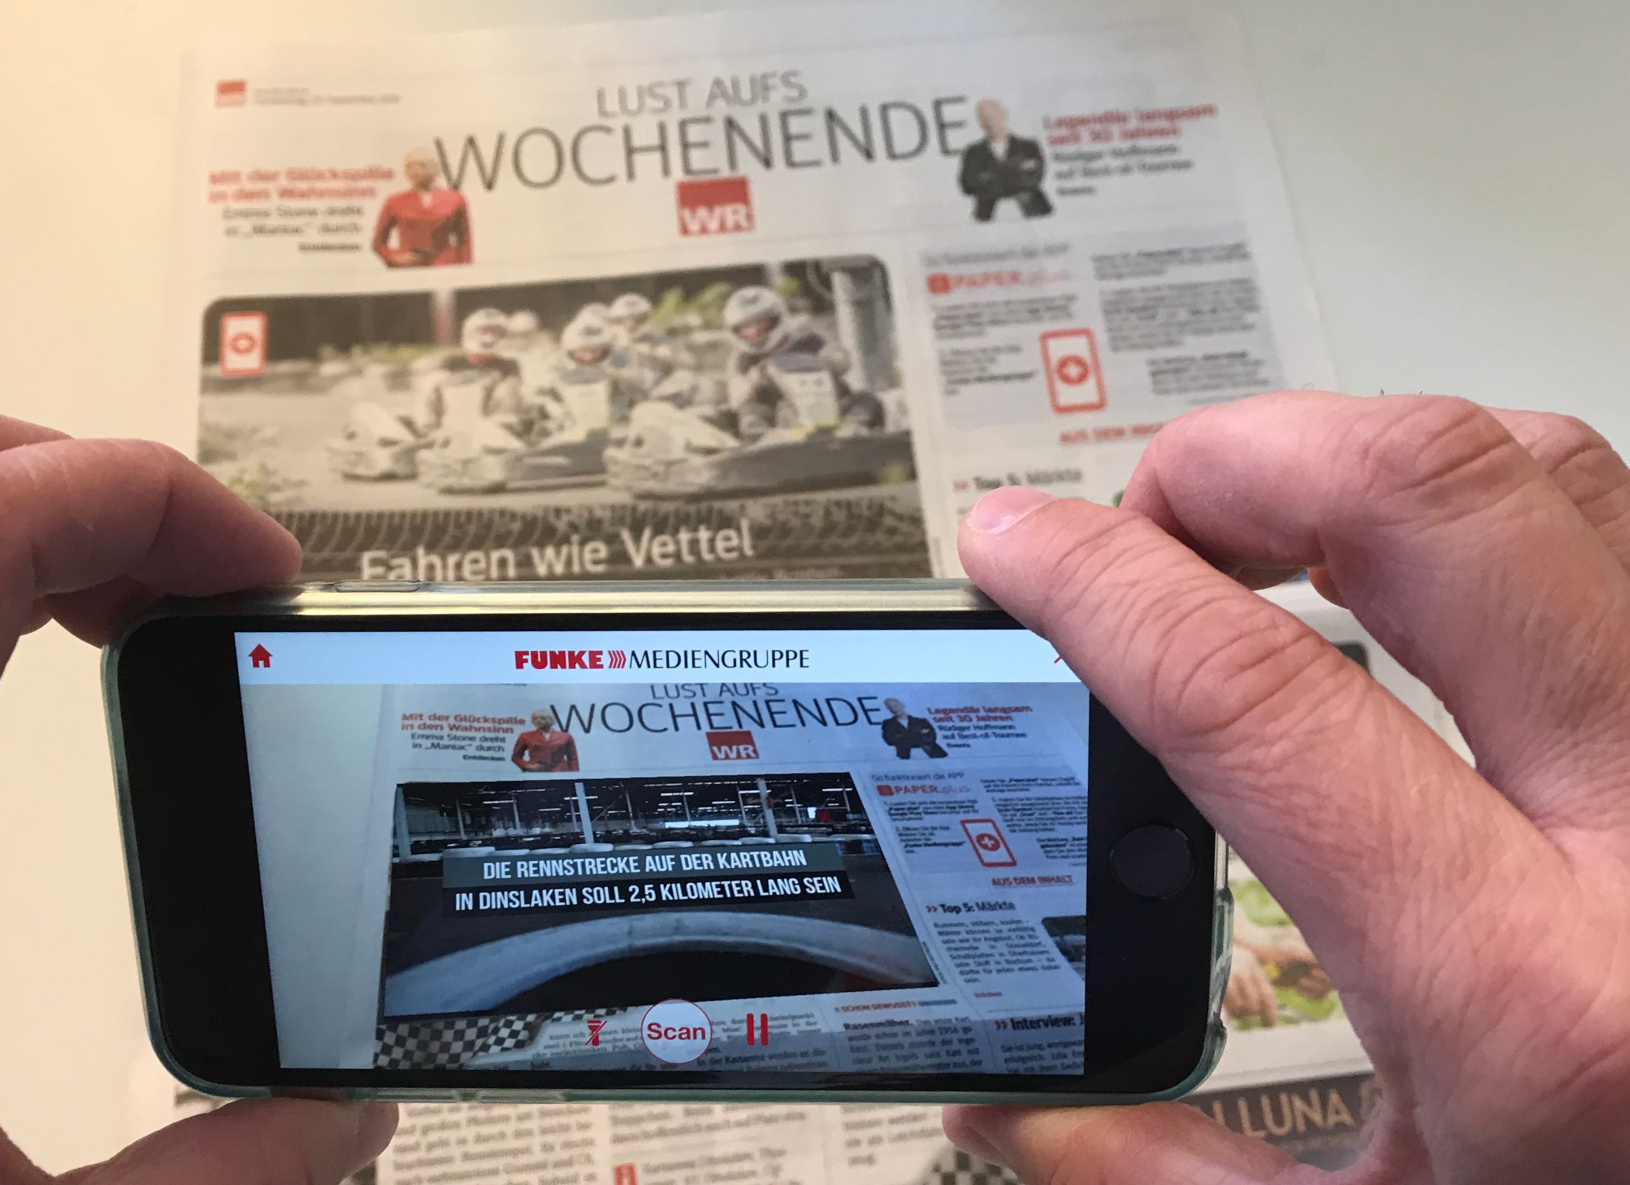 "Die Augmented Reality App ""Paper.plus"" verwandelt Bilder in Videos. Foto: Marketing im Pott"